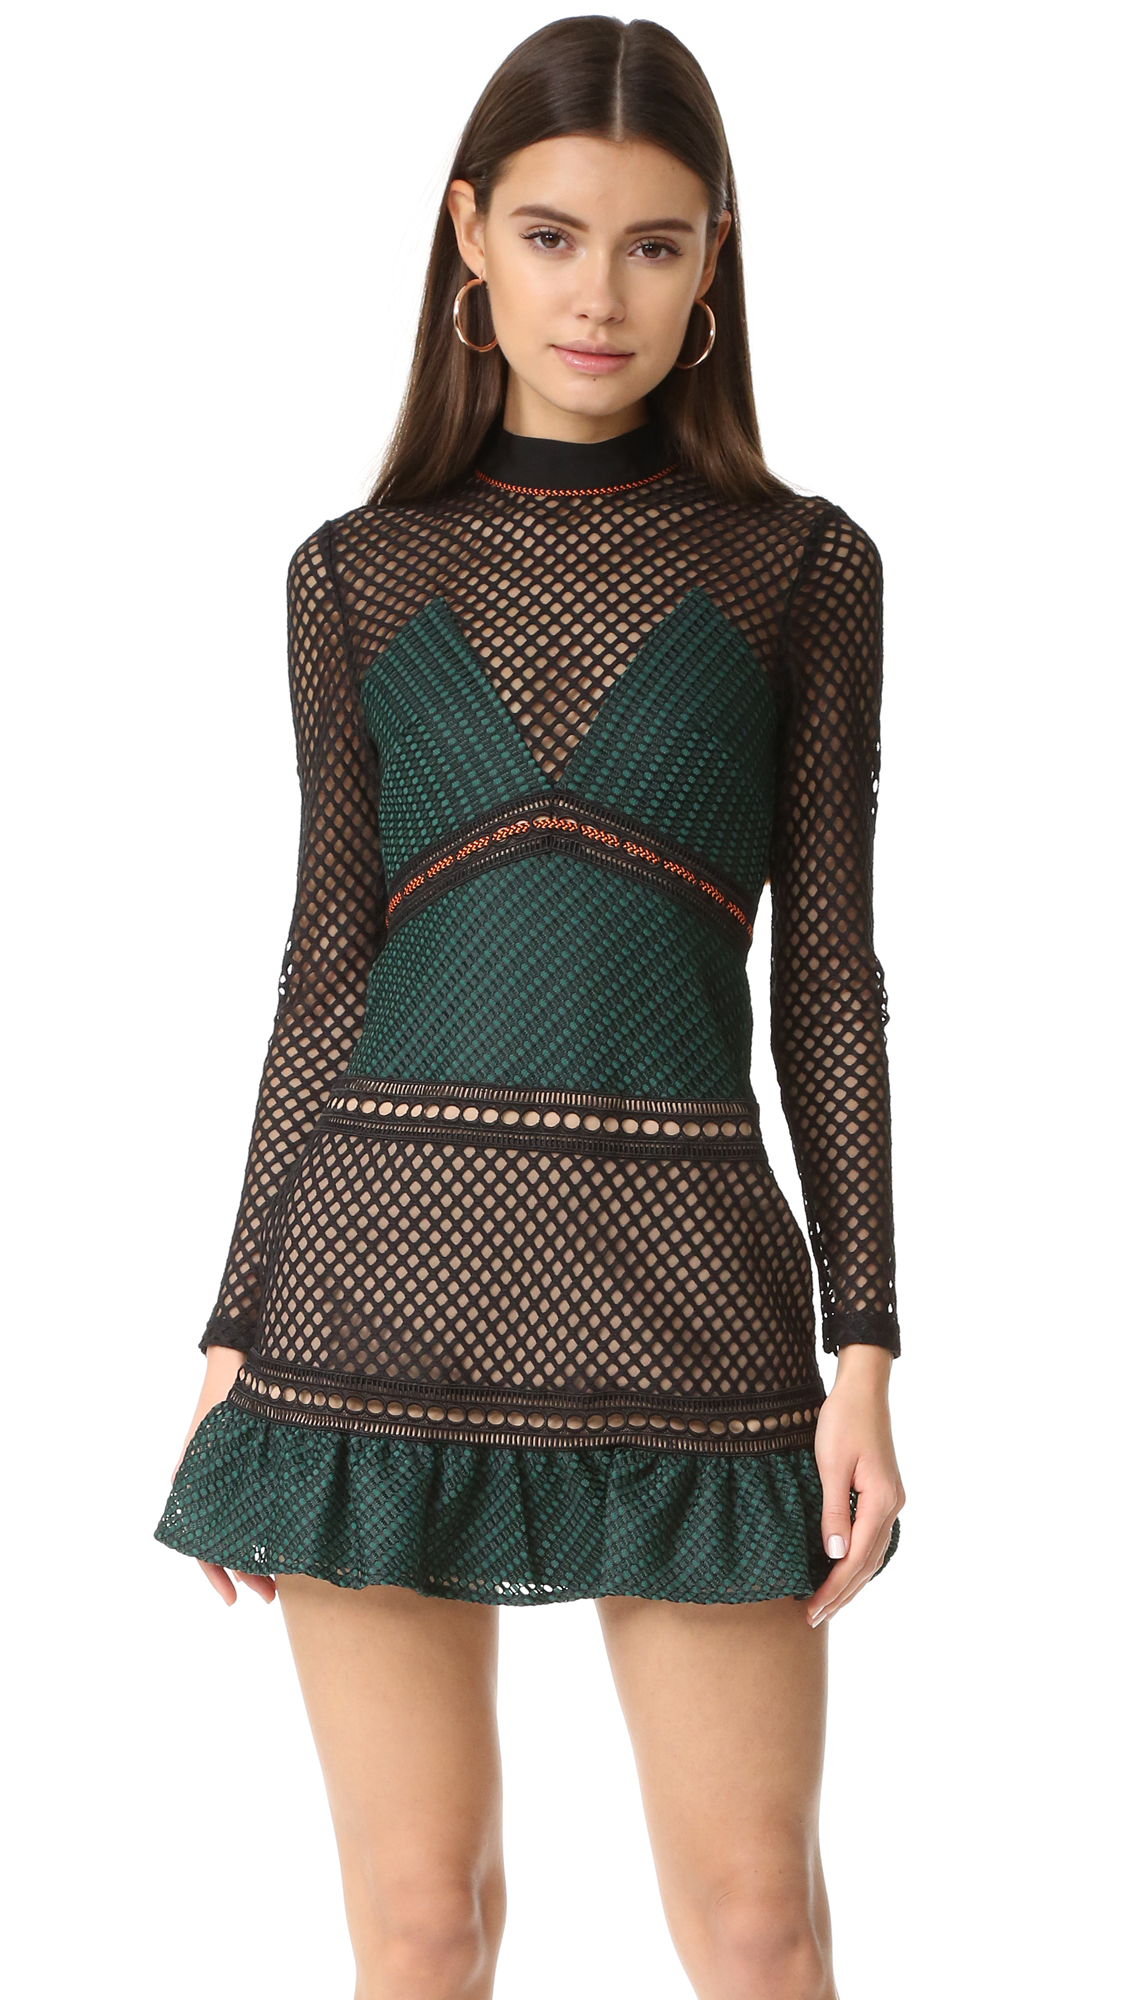 Self Portrait Dresses And Clothing Cj Online Stores